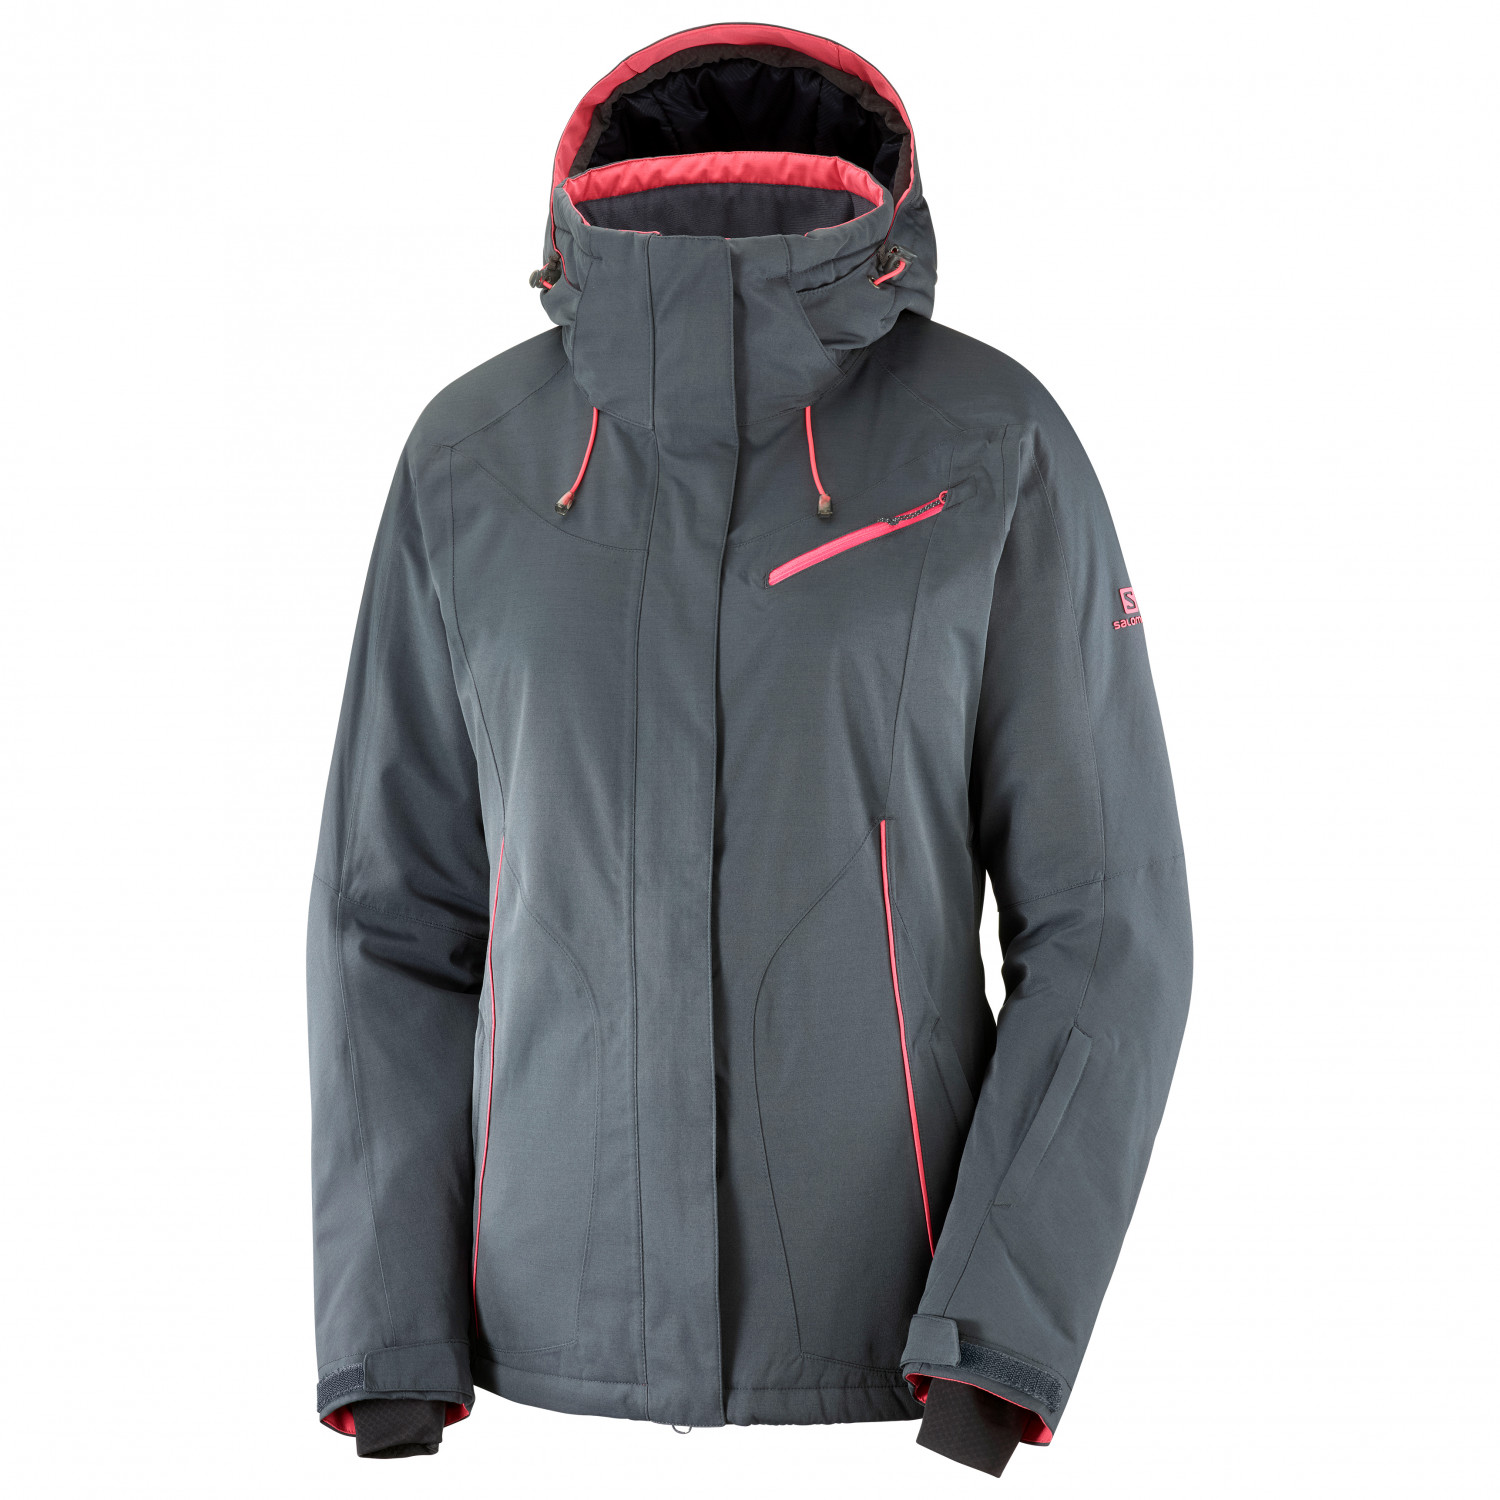 Salomon Women's Fantasy Jacket Giacca da sci Lunar Rock | S